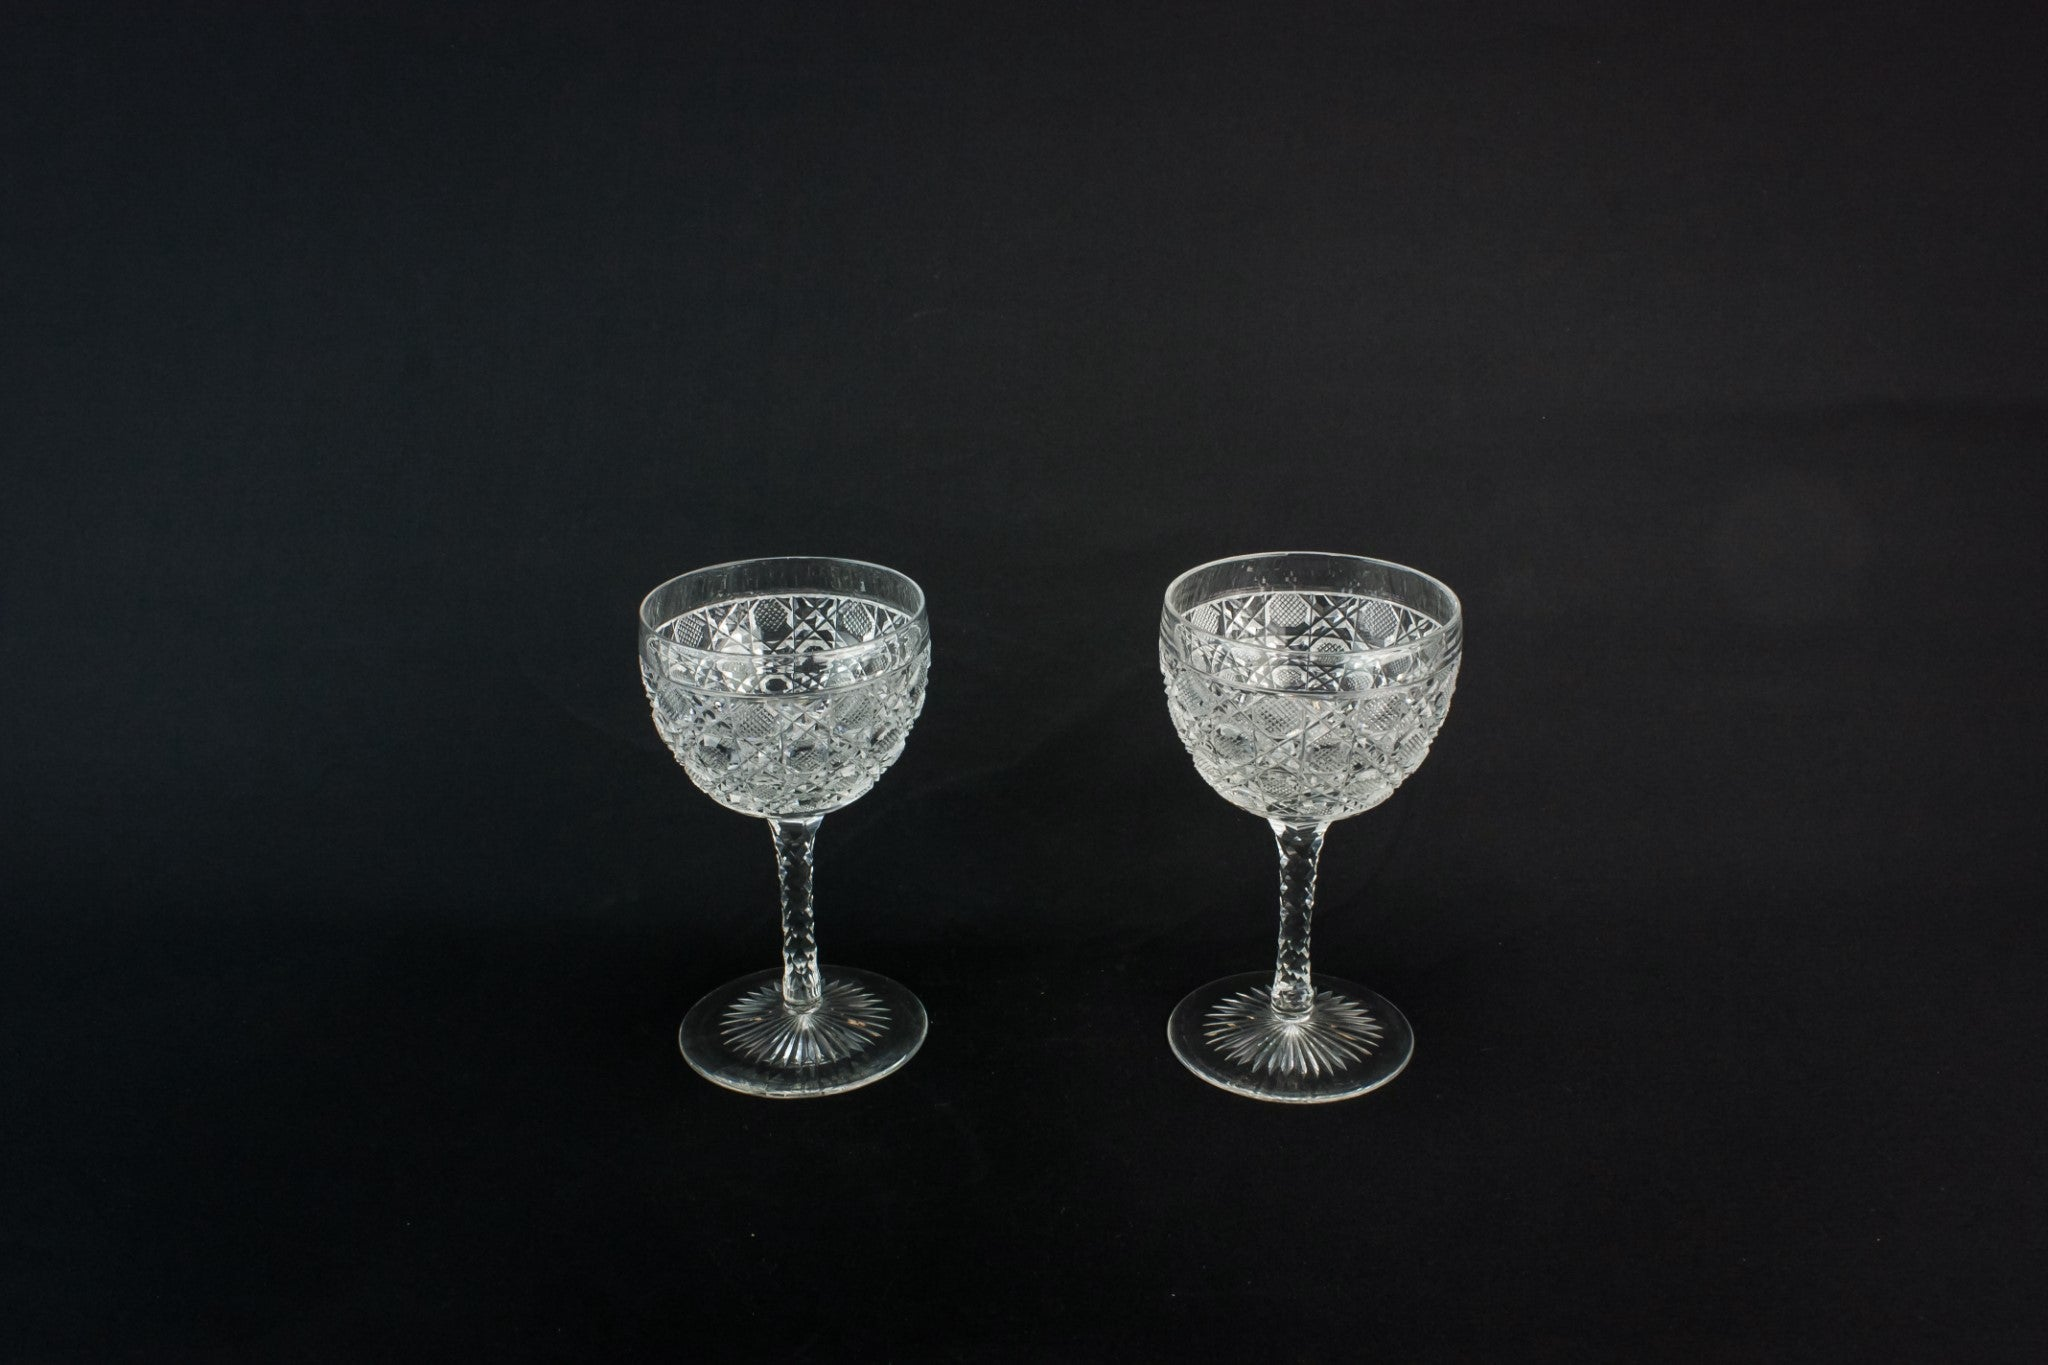 2 small wine glasses